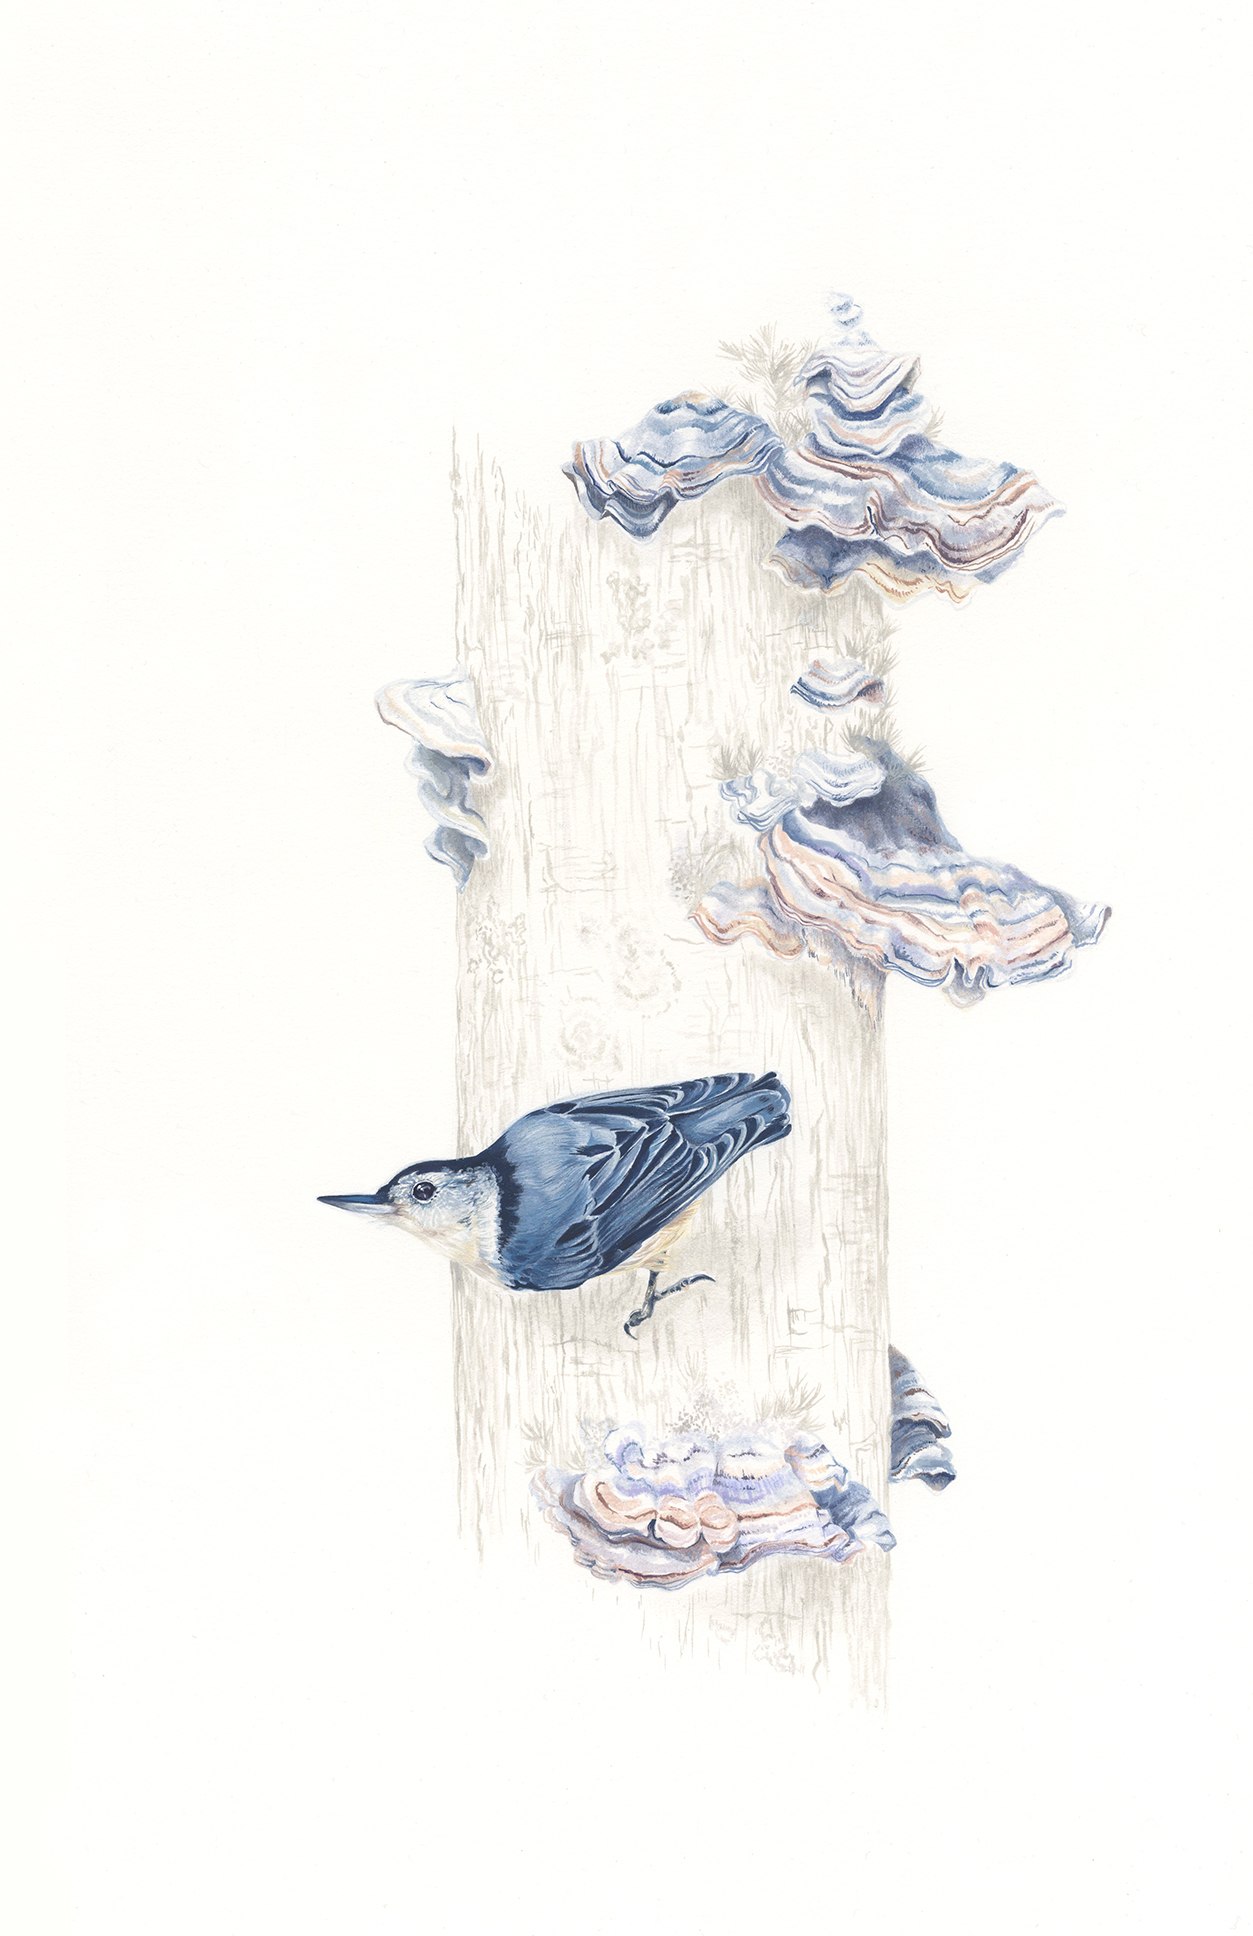 White-breasted Nuthatch & Trametes versicolor